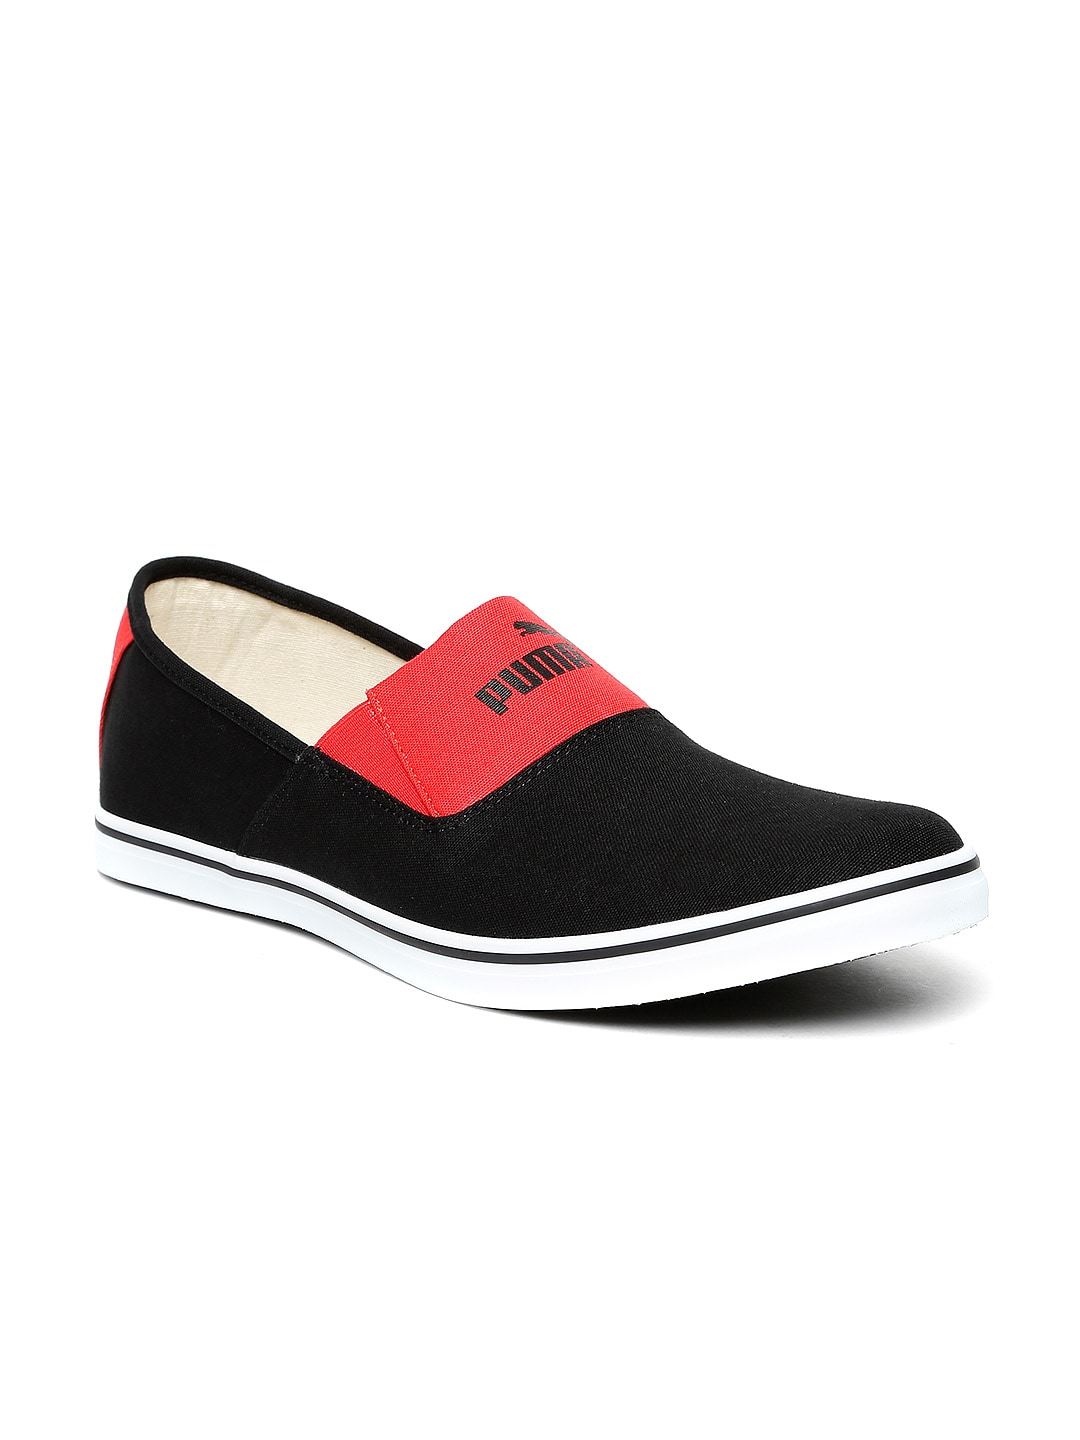 Puma Cat Shoes Casual - Buy Puma Cat Shoes Casual online in India d5c44a03f